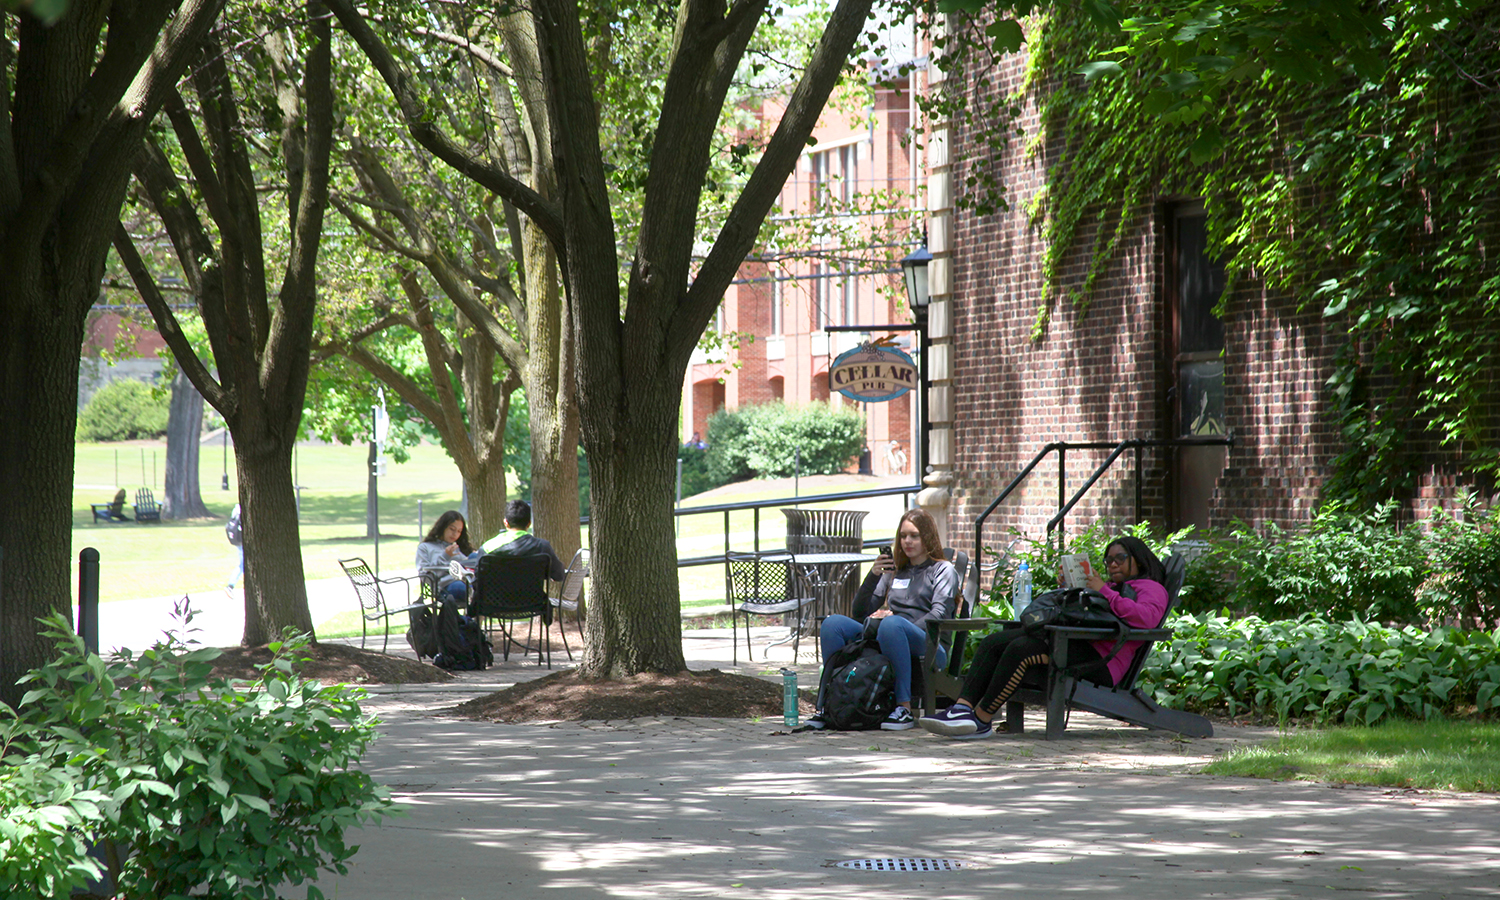 Students participating in the HWS Summer Academy enjoy the sunshine on the patio outside of Coxe Hall.